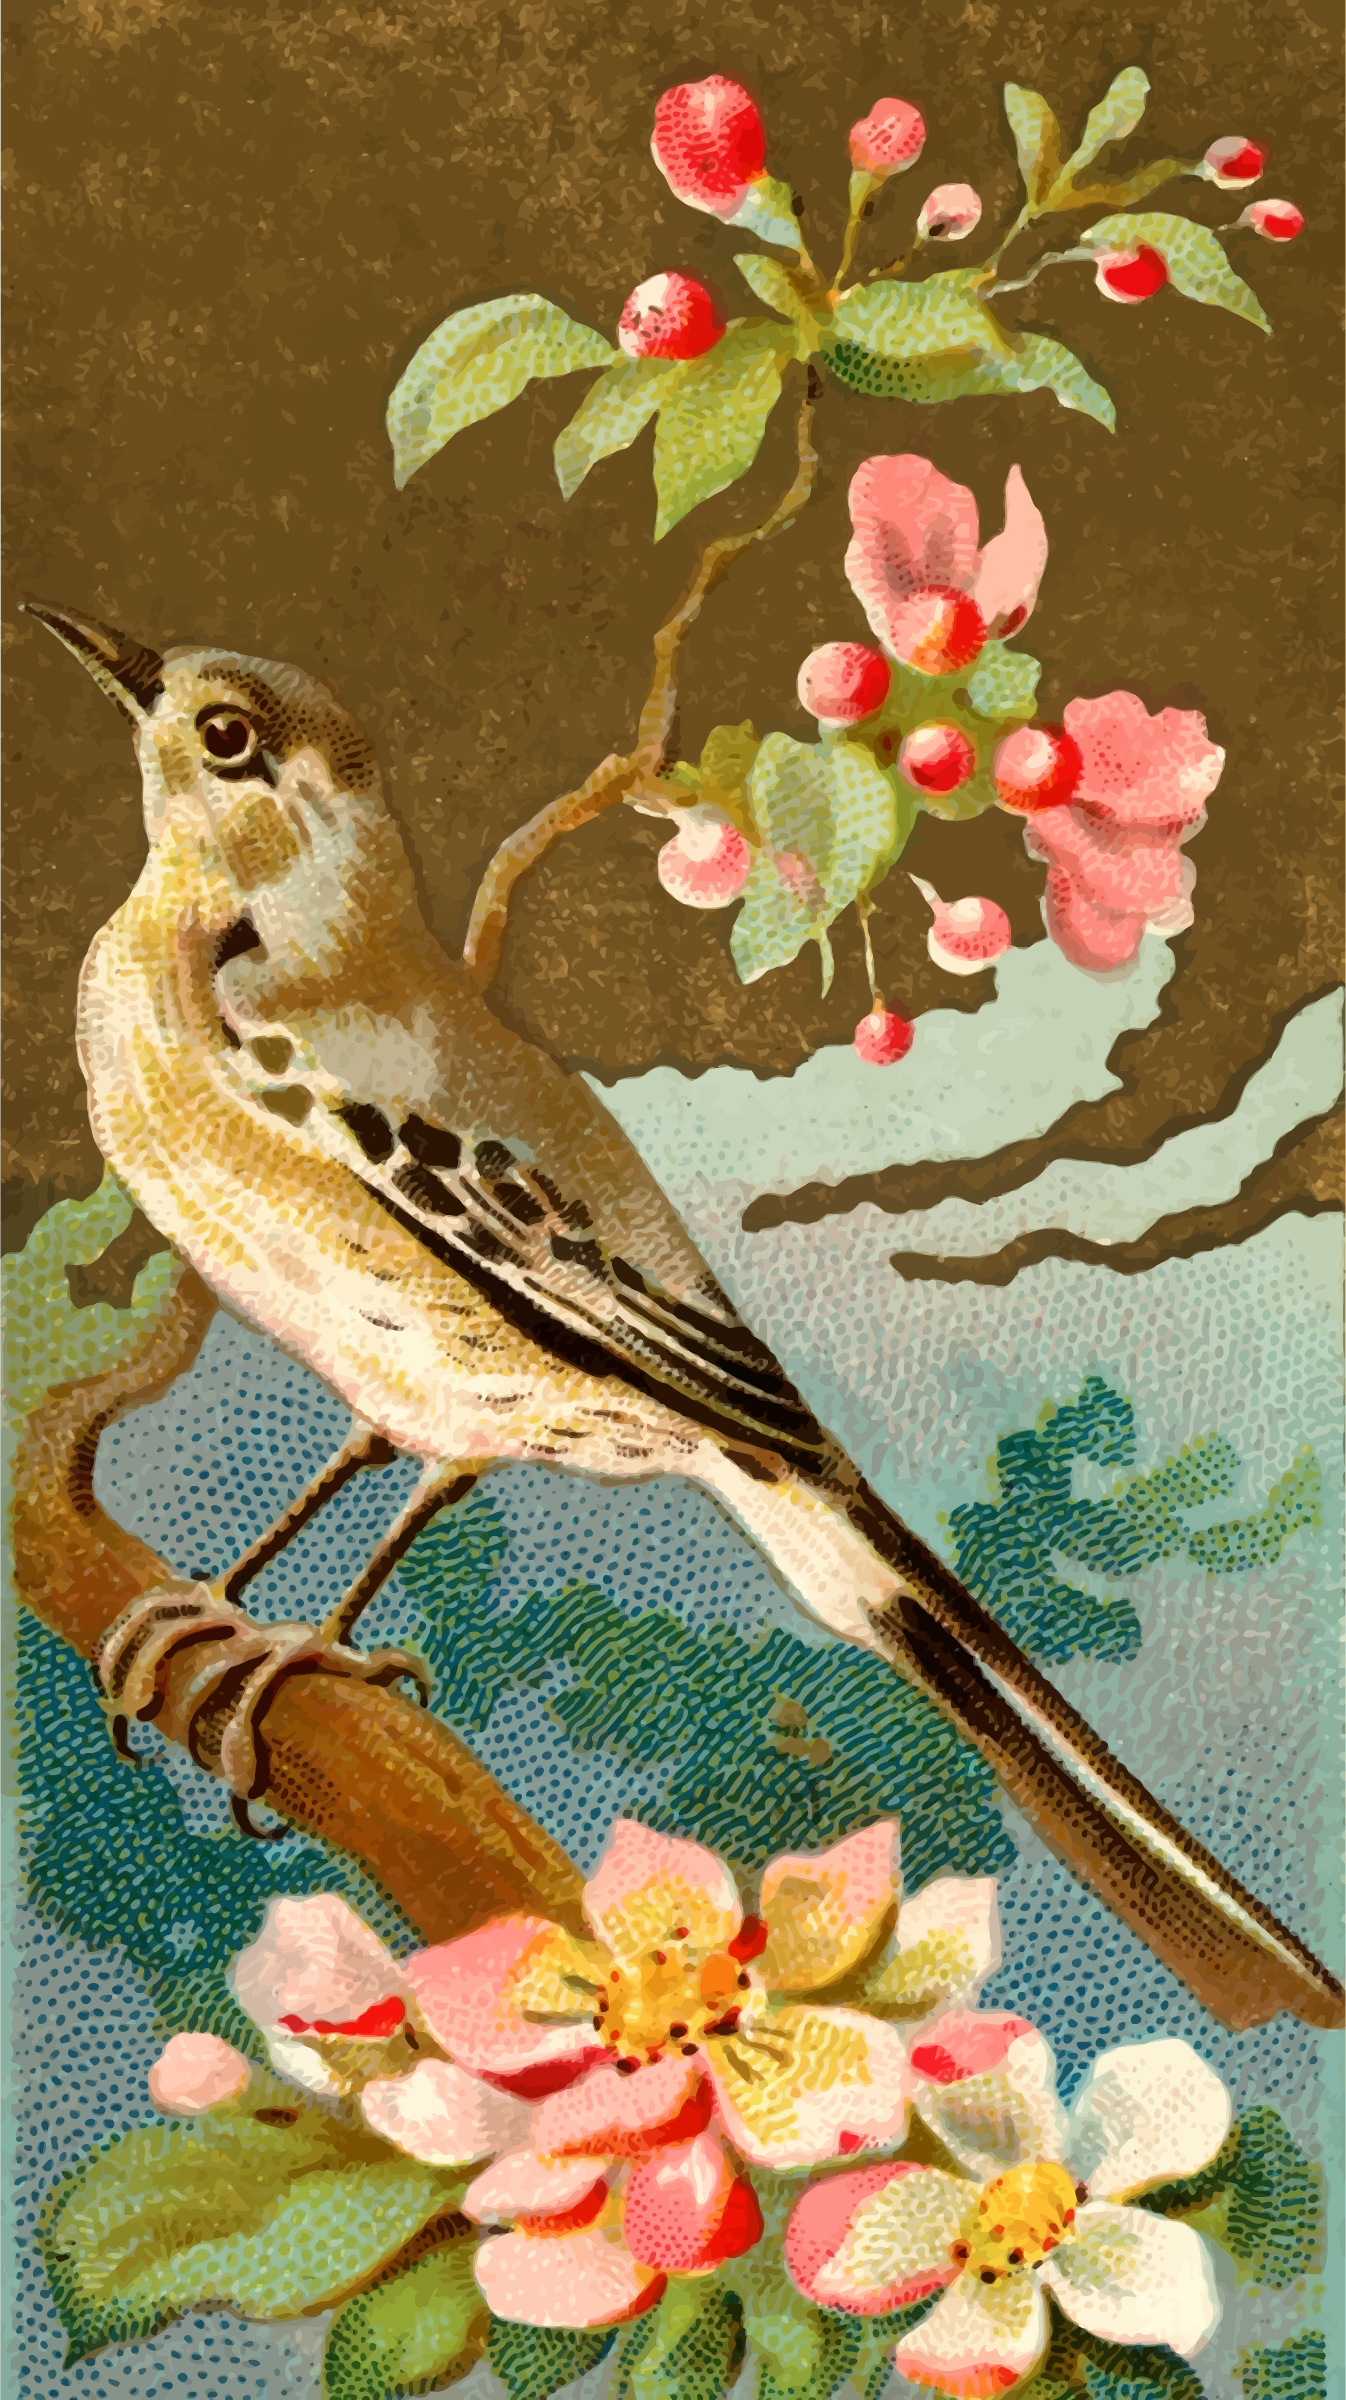 Cigarette card - Mocking Bird by Firkin